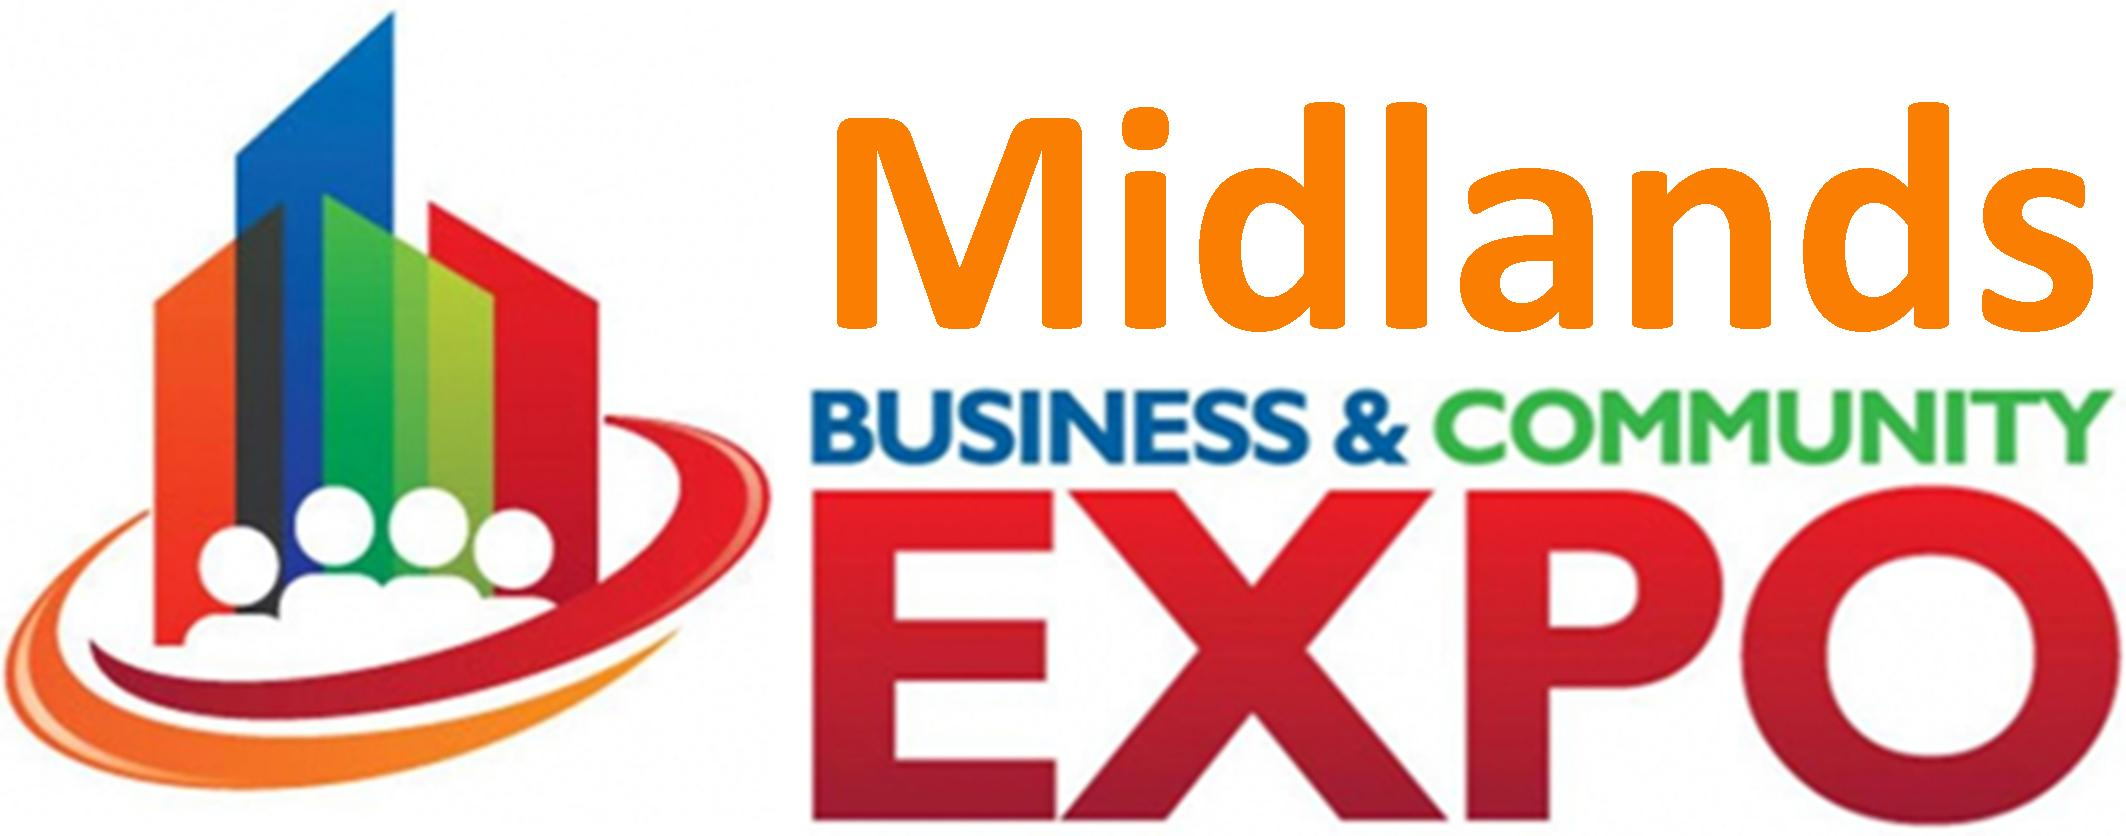 The Midlands Business Show is BACK